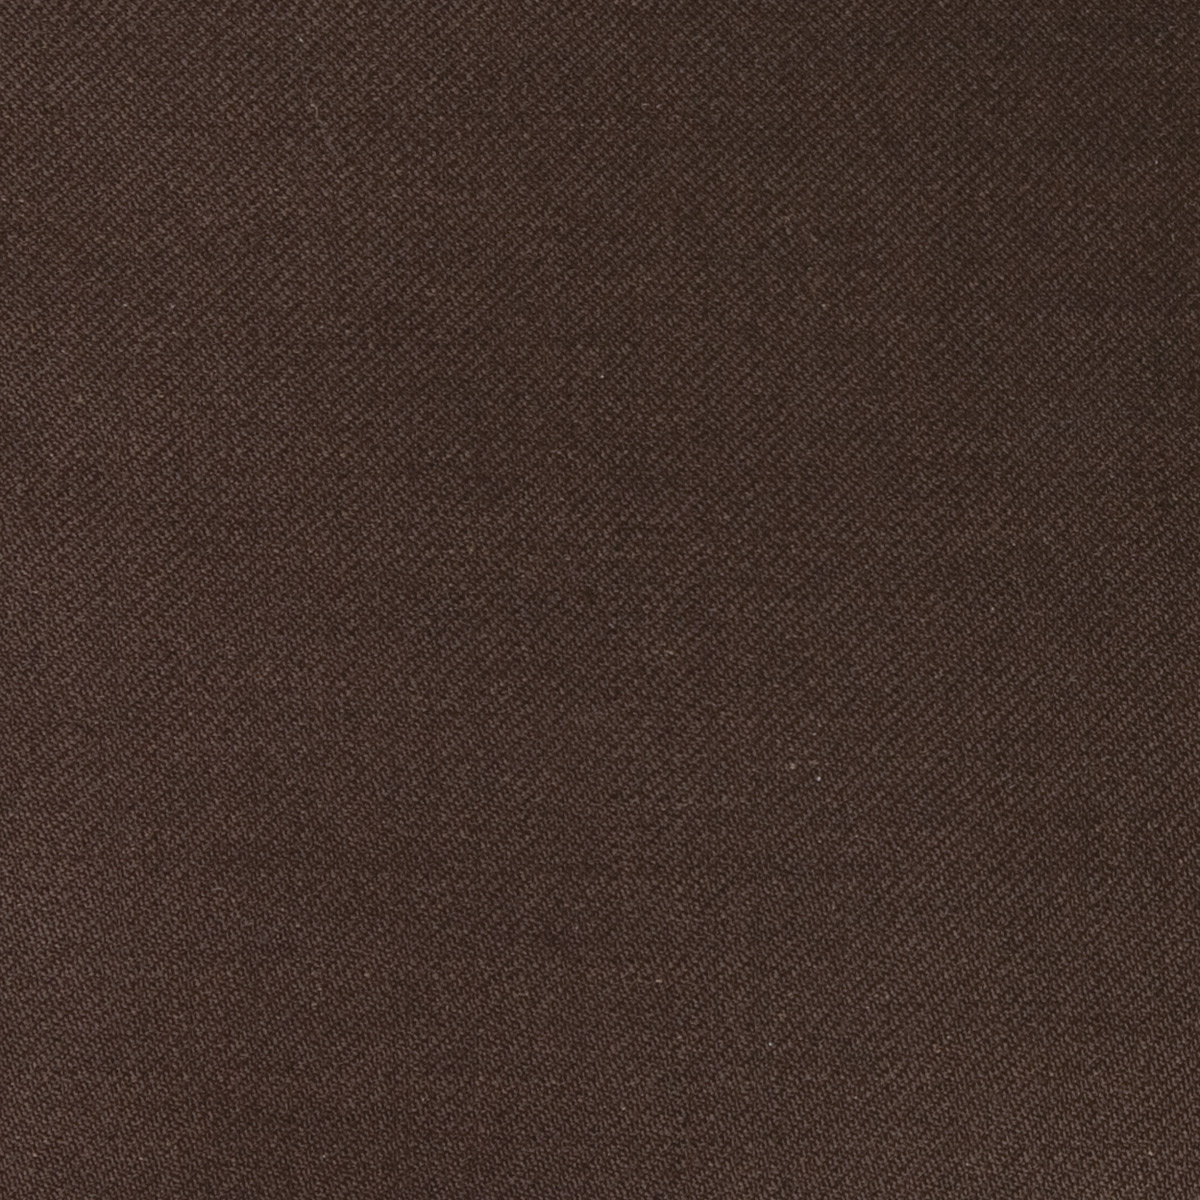 Buy tailor made shirts online - Lightweight Cotton Leisure Cloth - Dark Brown with lining